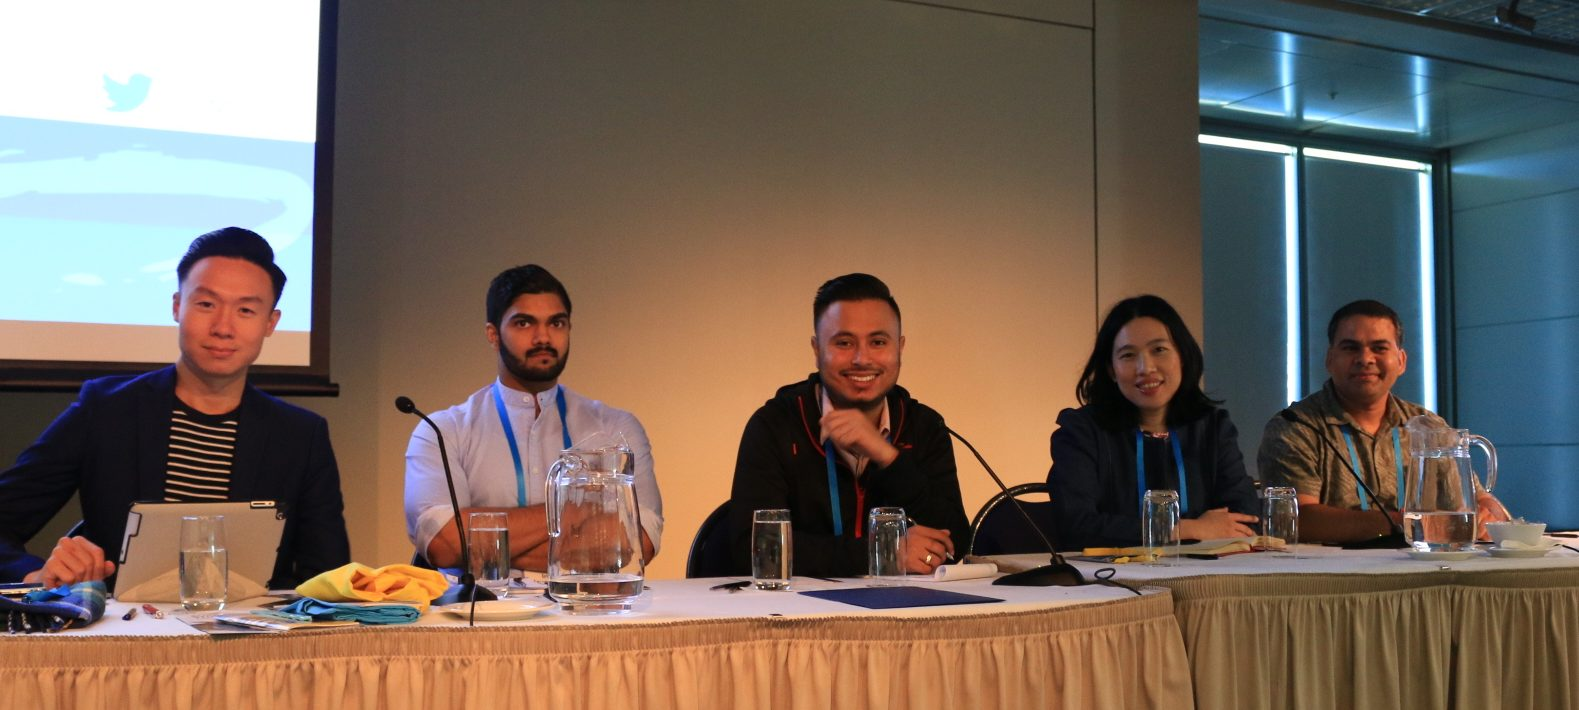 International student panel at ISANA International Education Association